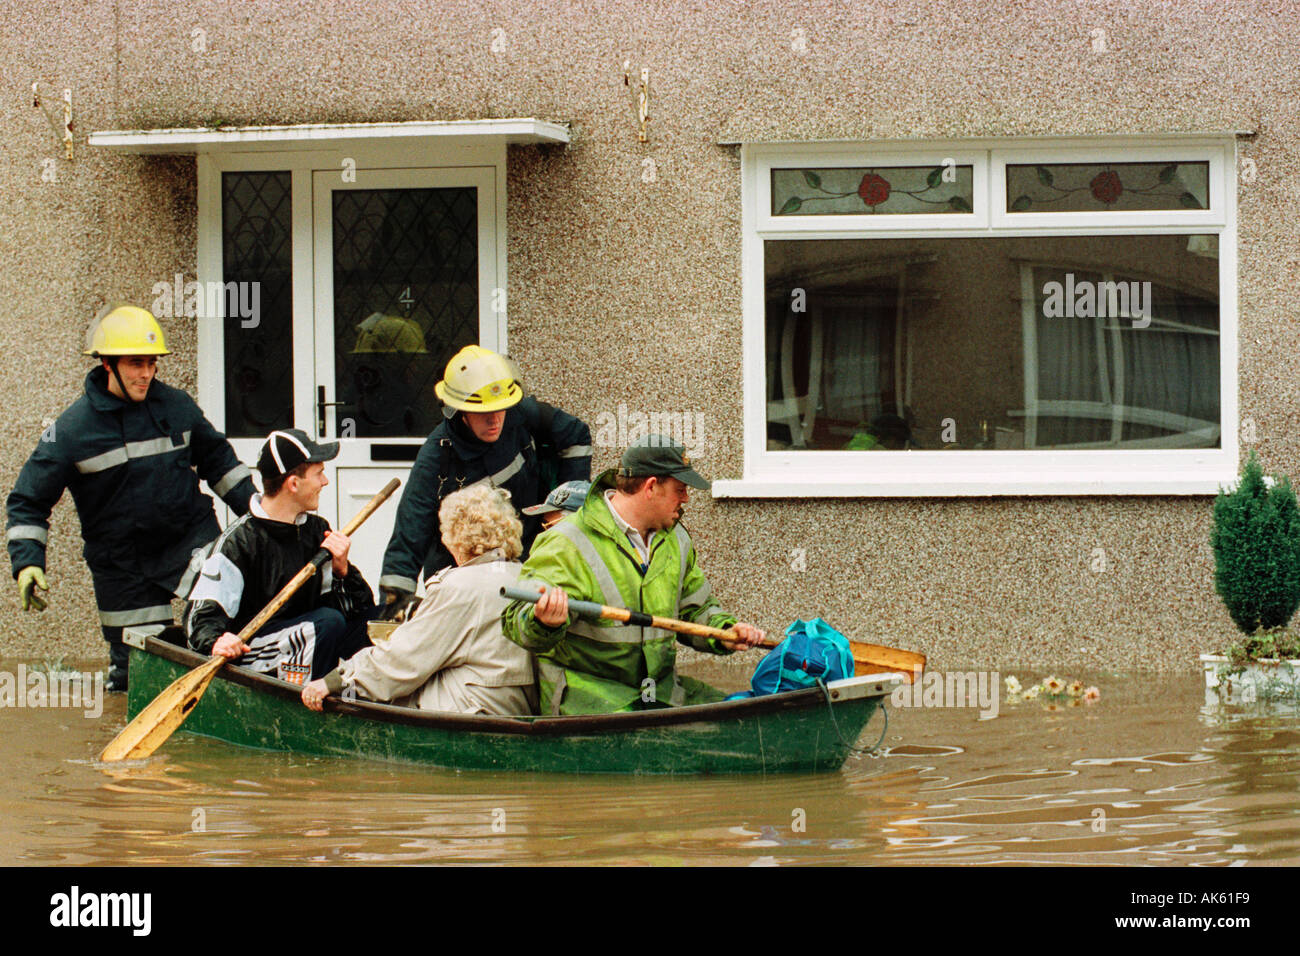 residents-being-rescued-after-the-river-taff-burst-it-s-banks-at-aberfan-AK61F9.jpg